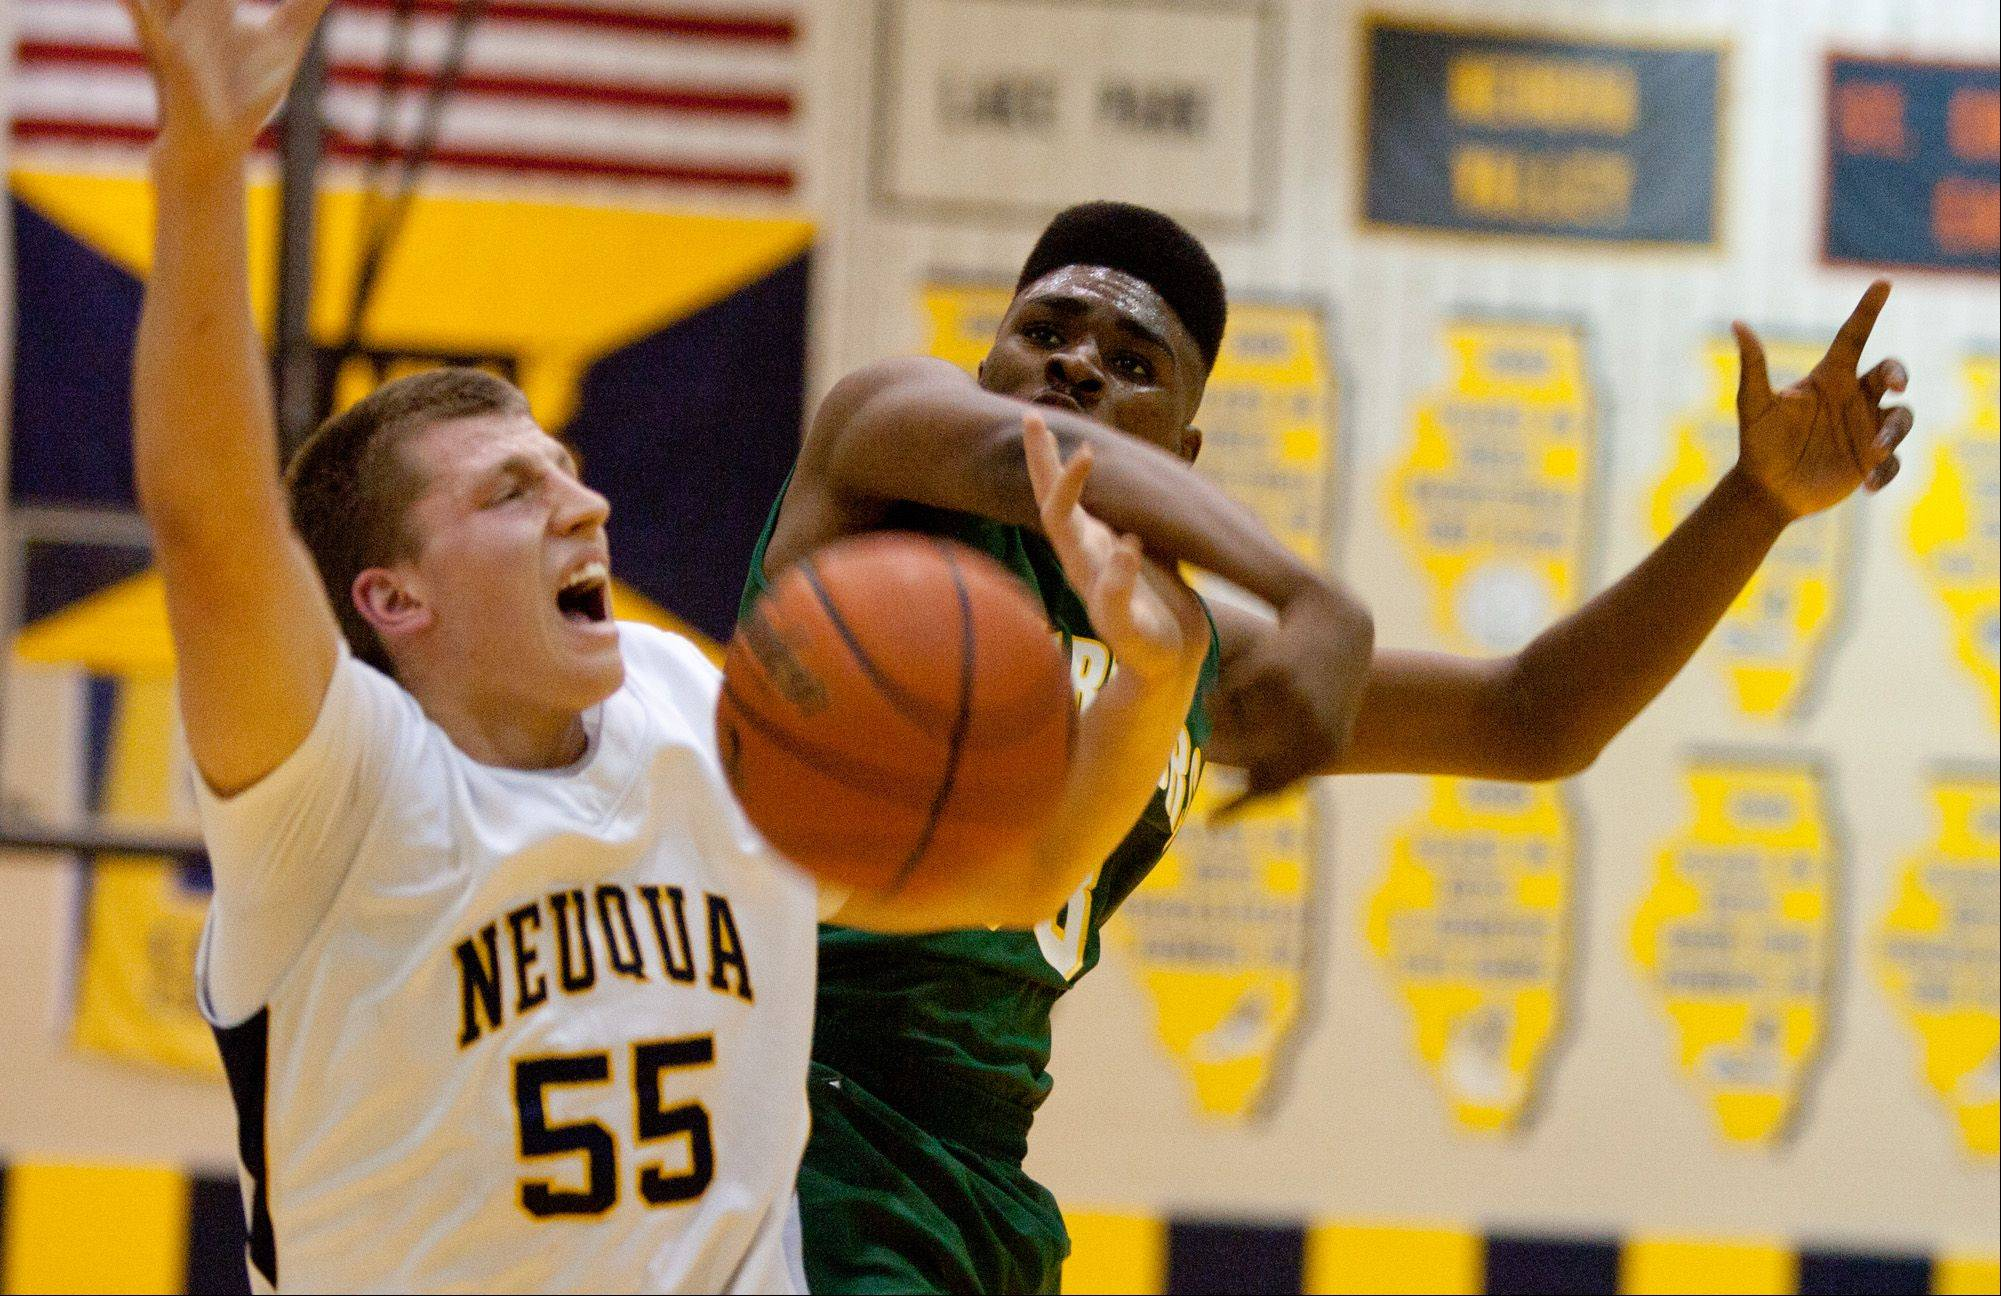 Neuqua Valley's Pat Kenny, 55, has his shot blocked by Waubonsie Valley's Javares Stewart.